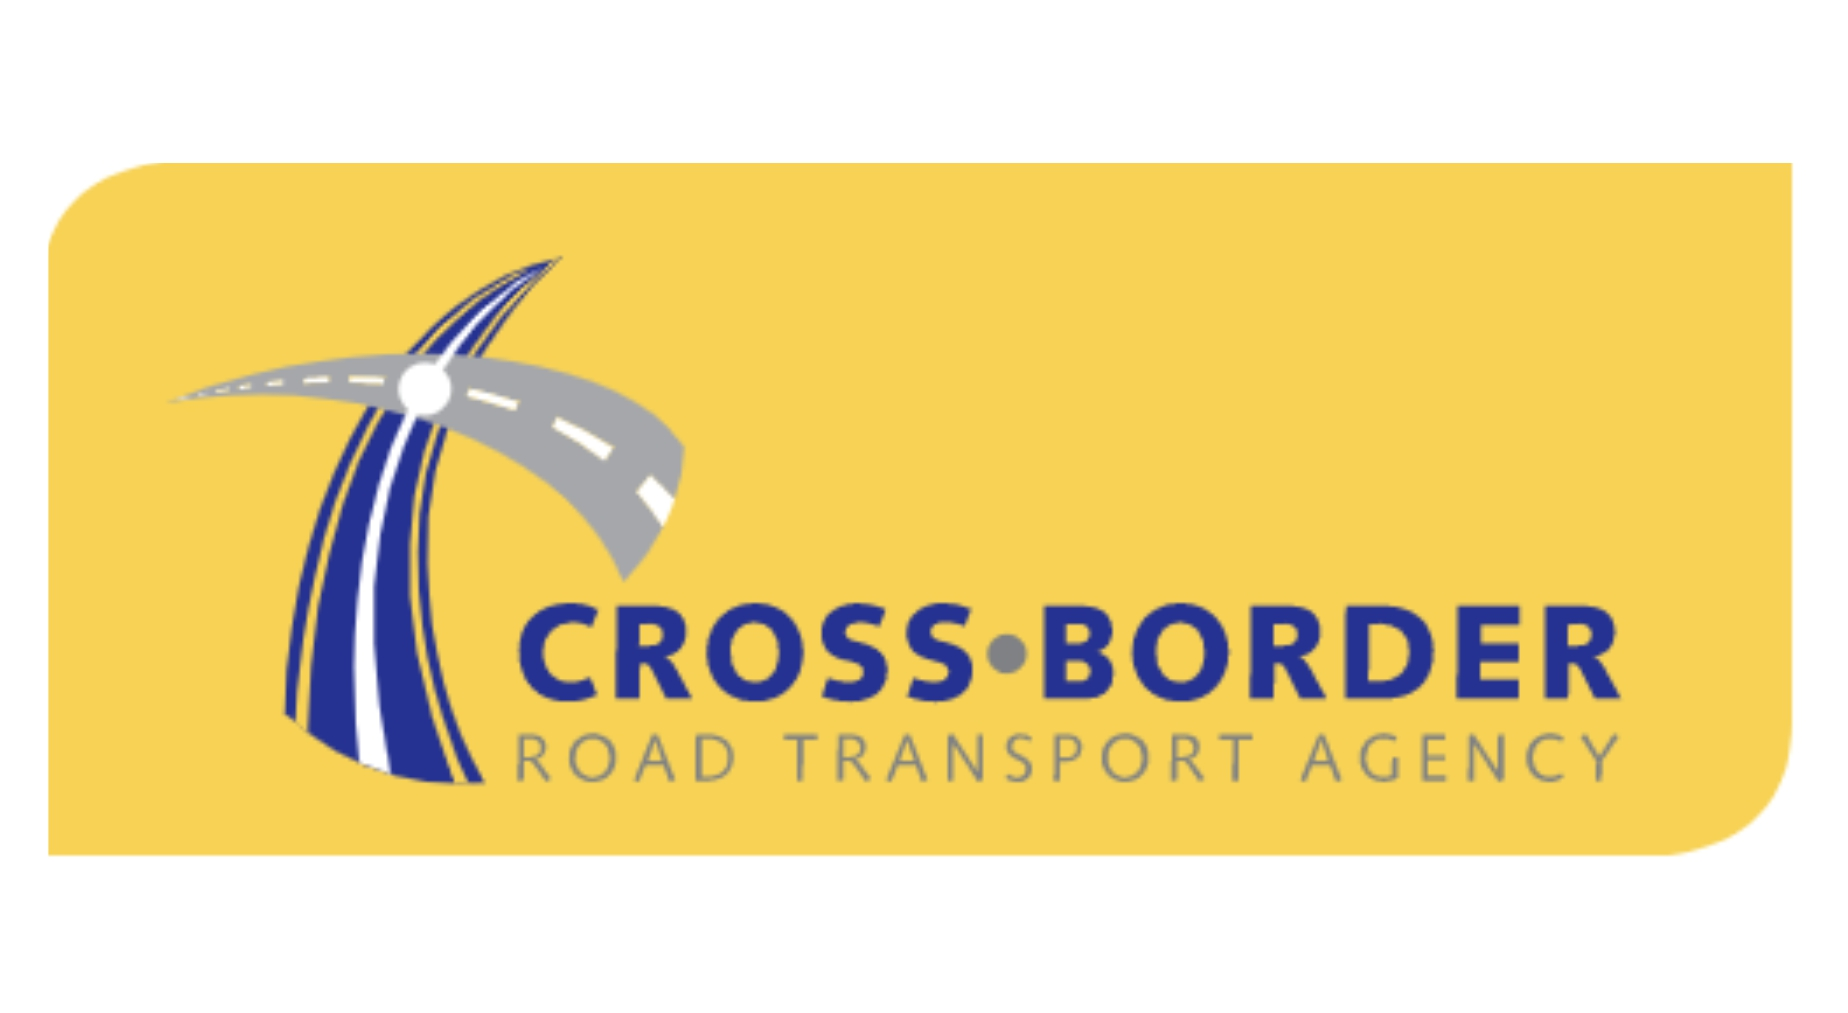 https://beyondcarriers.co.za/wp-content/uploads/2019/07/cross_border_logo.jpg